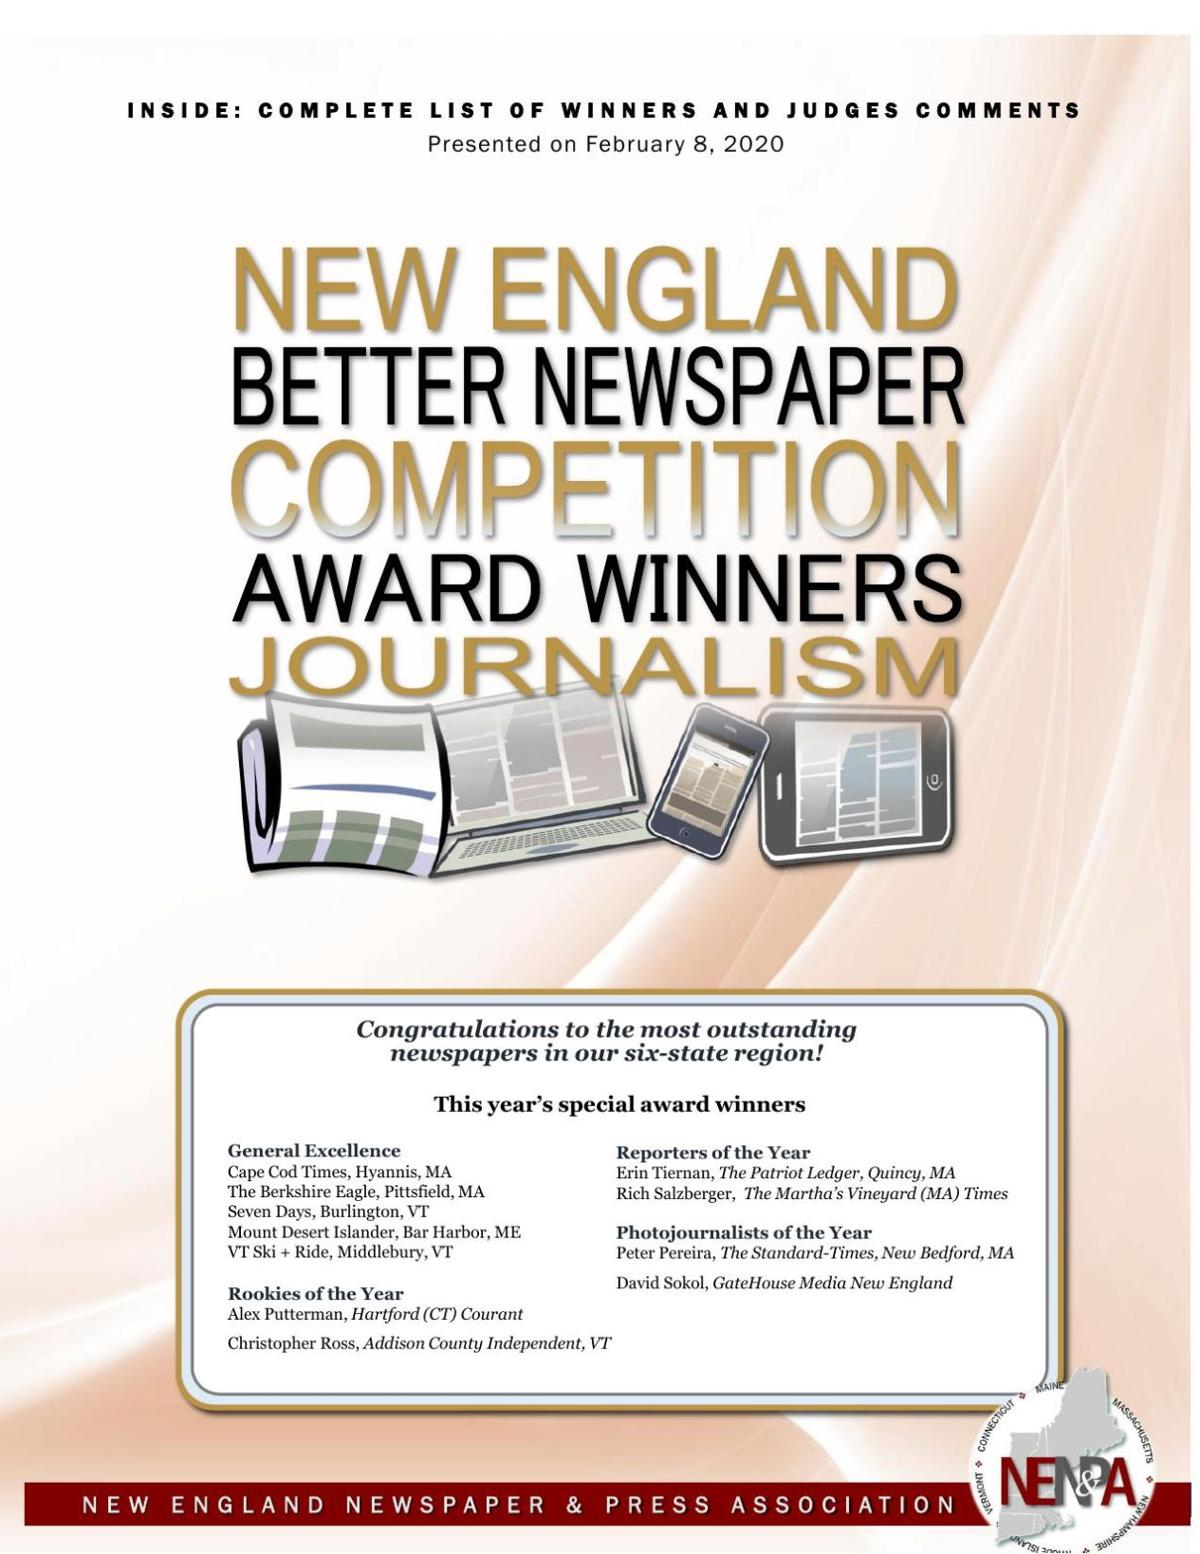 NENPA: 2019 Journalism Award Winners